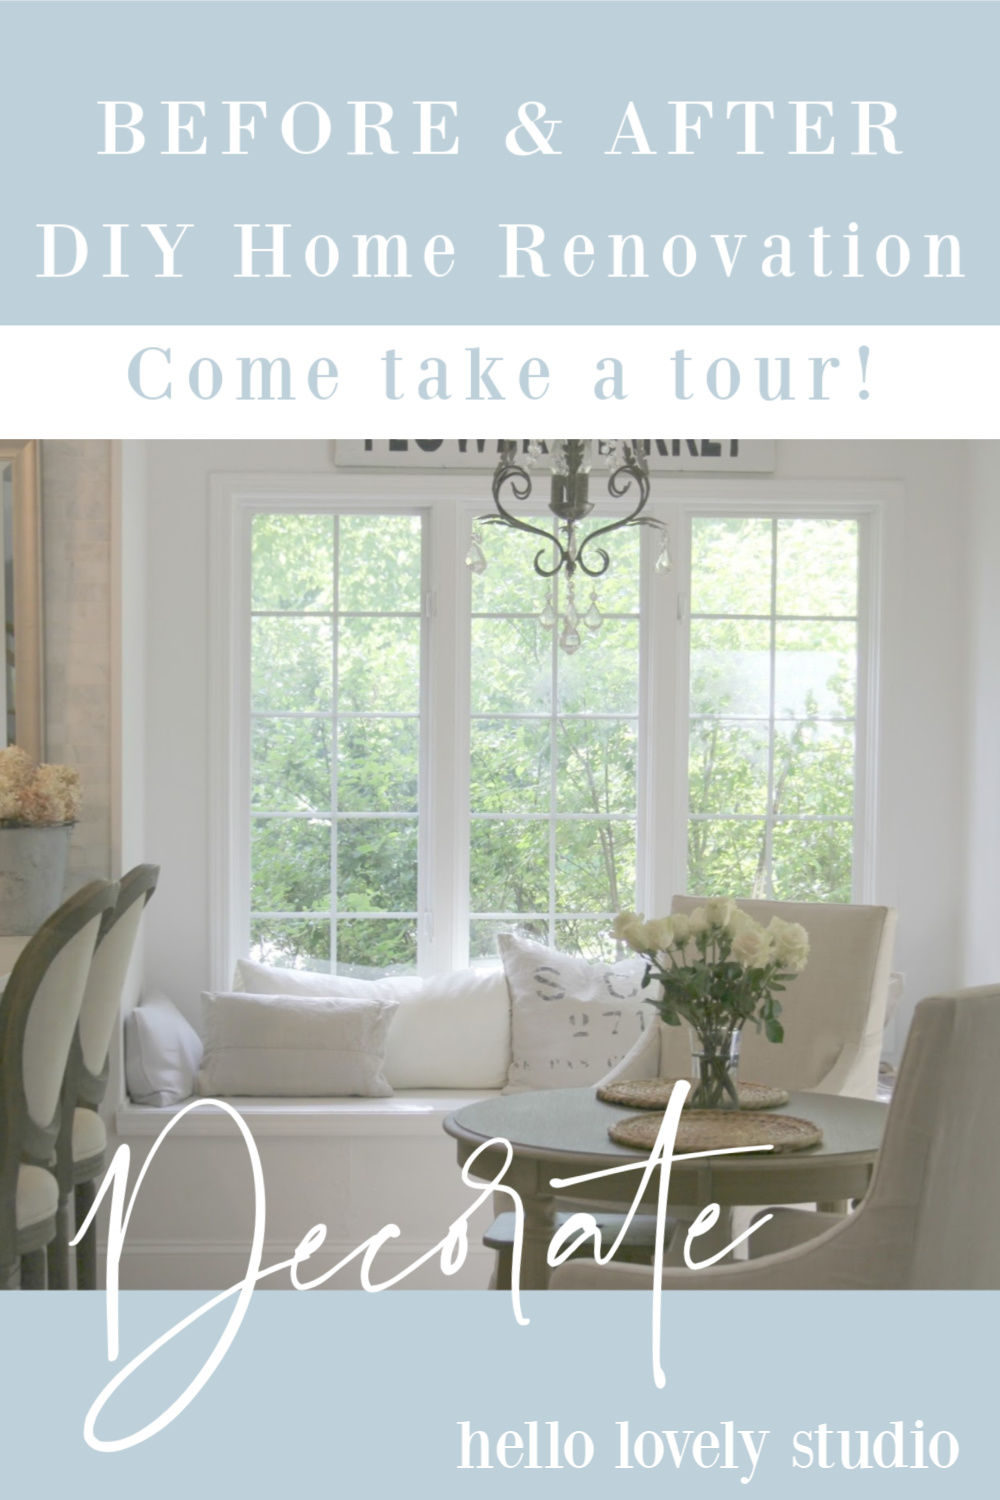 Before and after DIY Home Renovation - Come take a Tour. #hellolovelystudio #homerenovation #homeimprovement #beforeafter #fixerupper #interiordesign